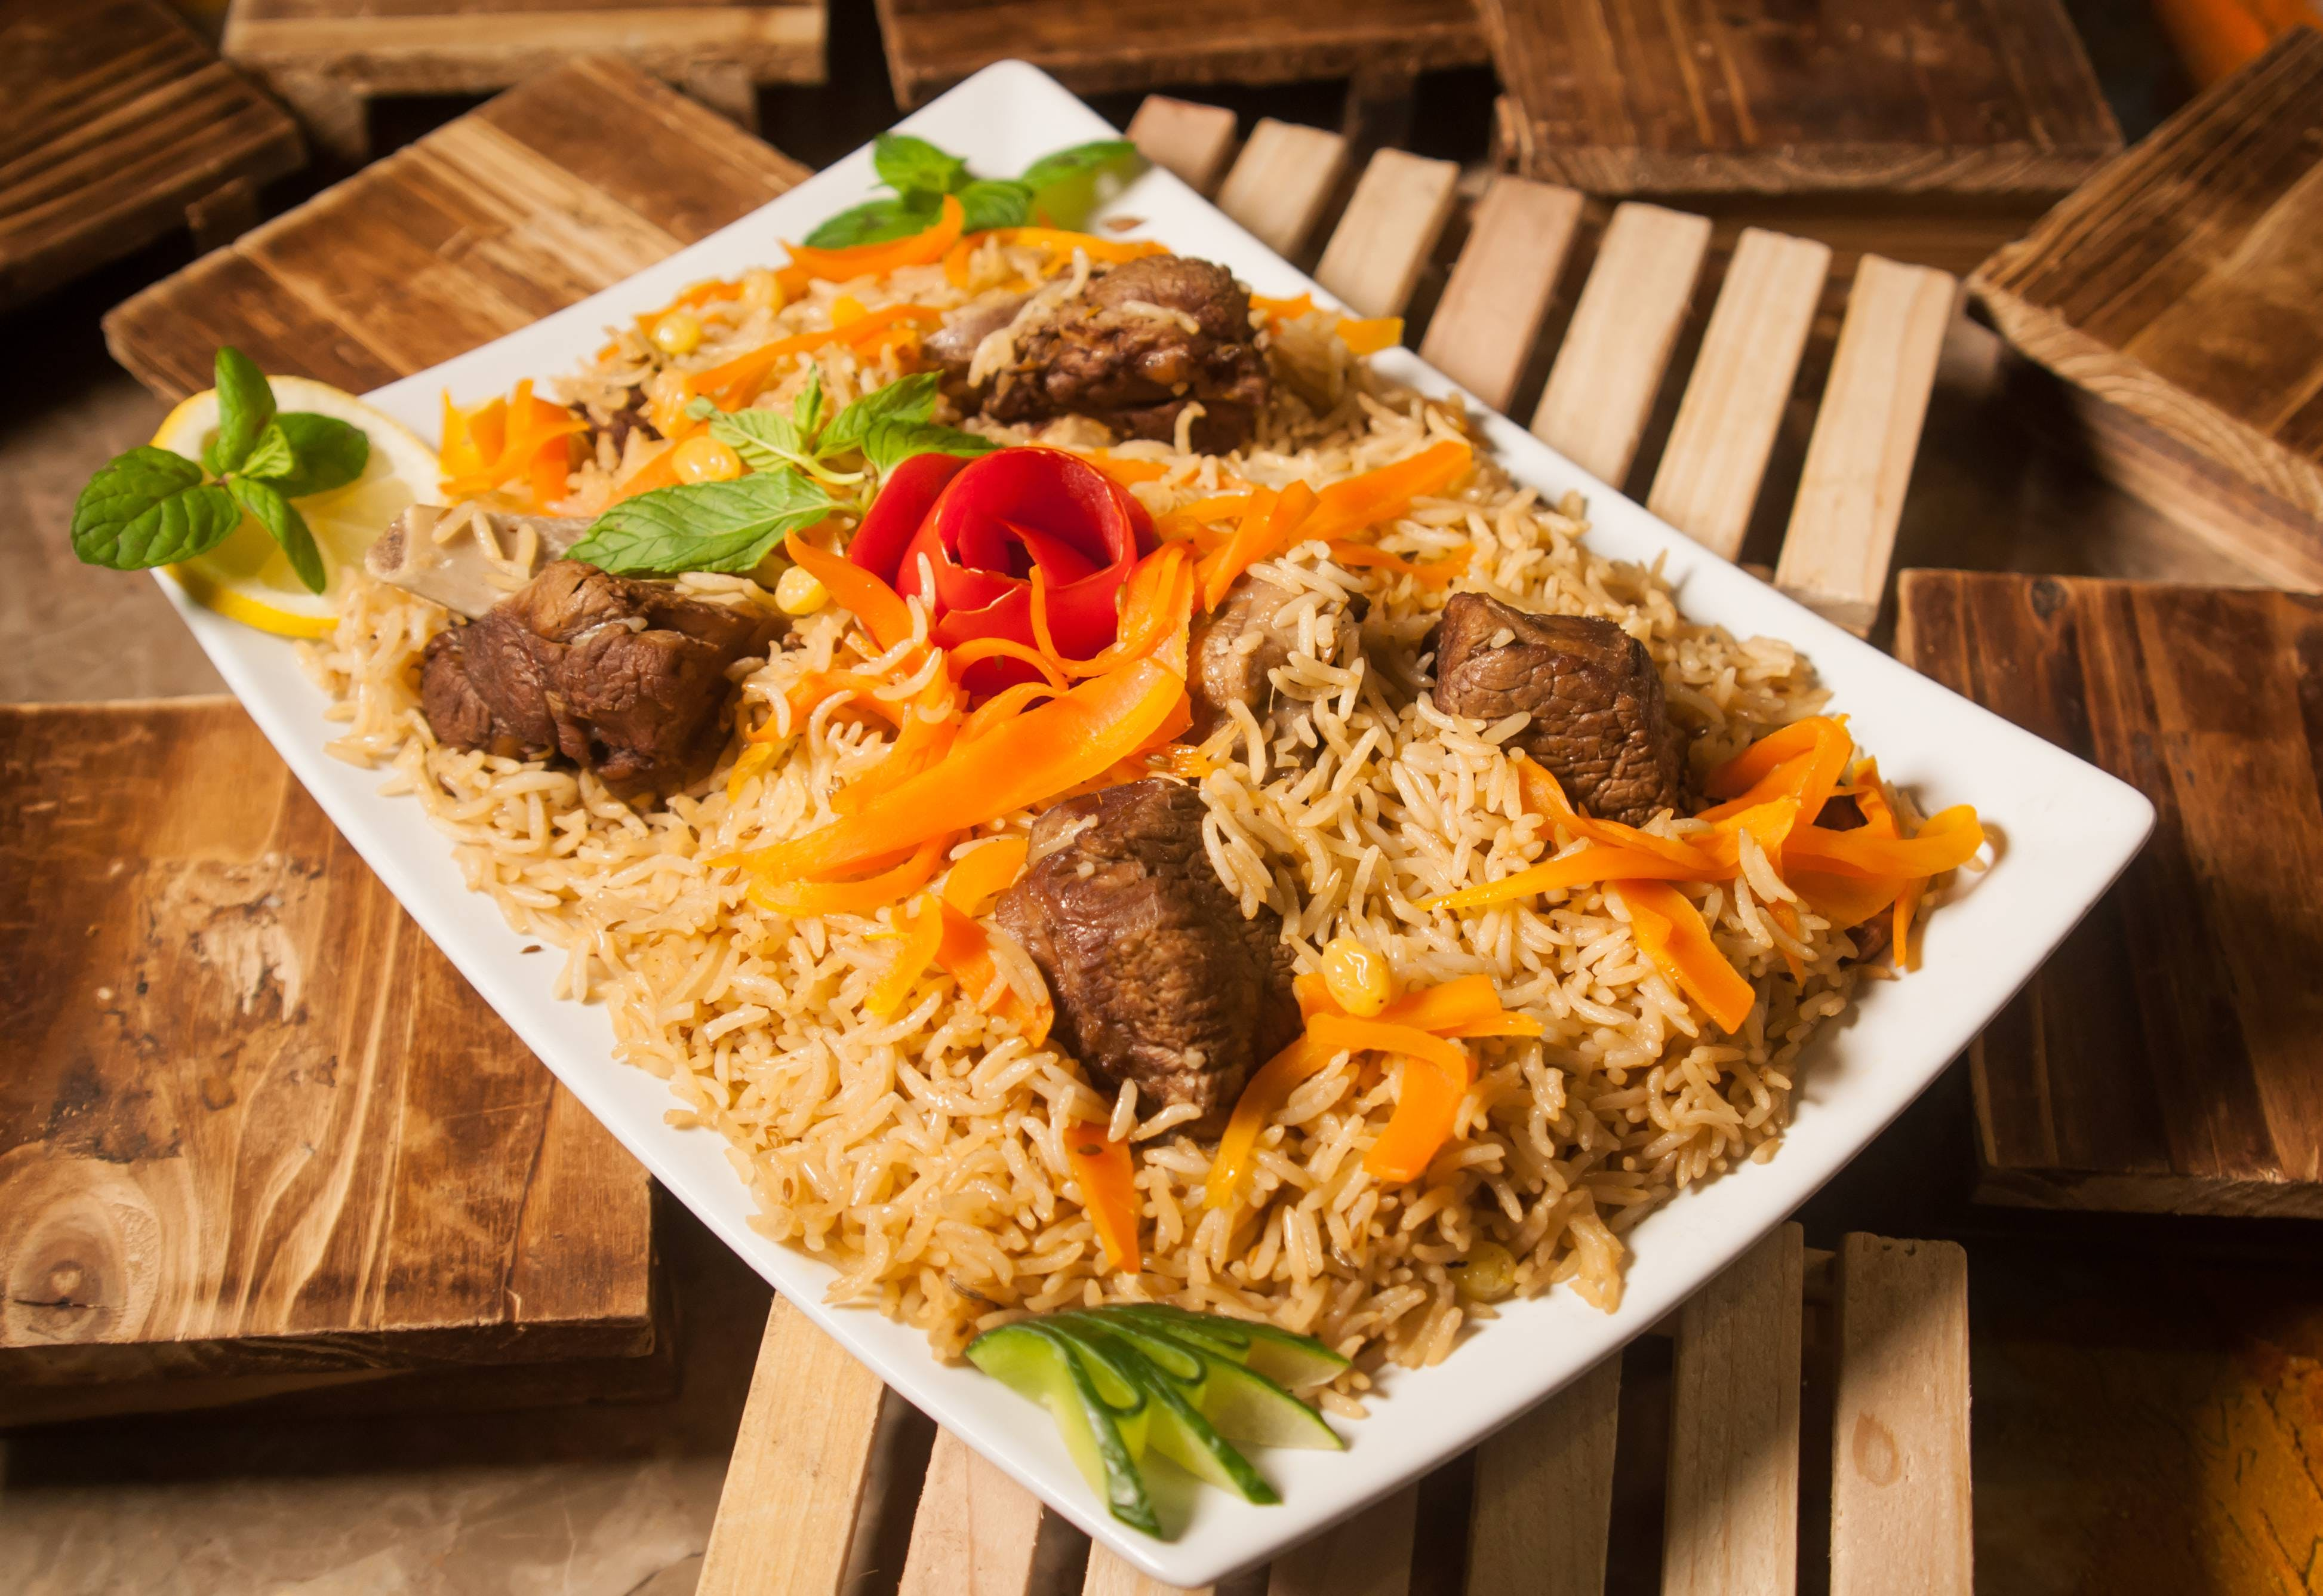 KABULI PULAO IS LAVISHLY TASTEFUL AS MADE WITH STEAMED RICE IN THE BEEF